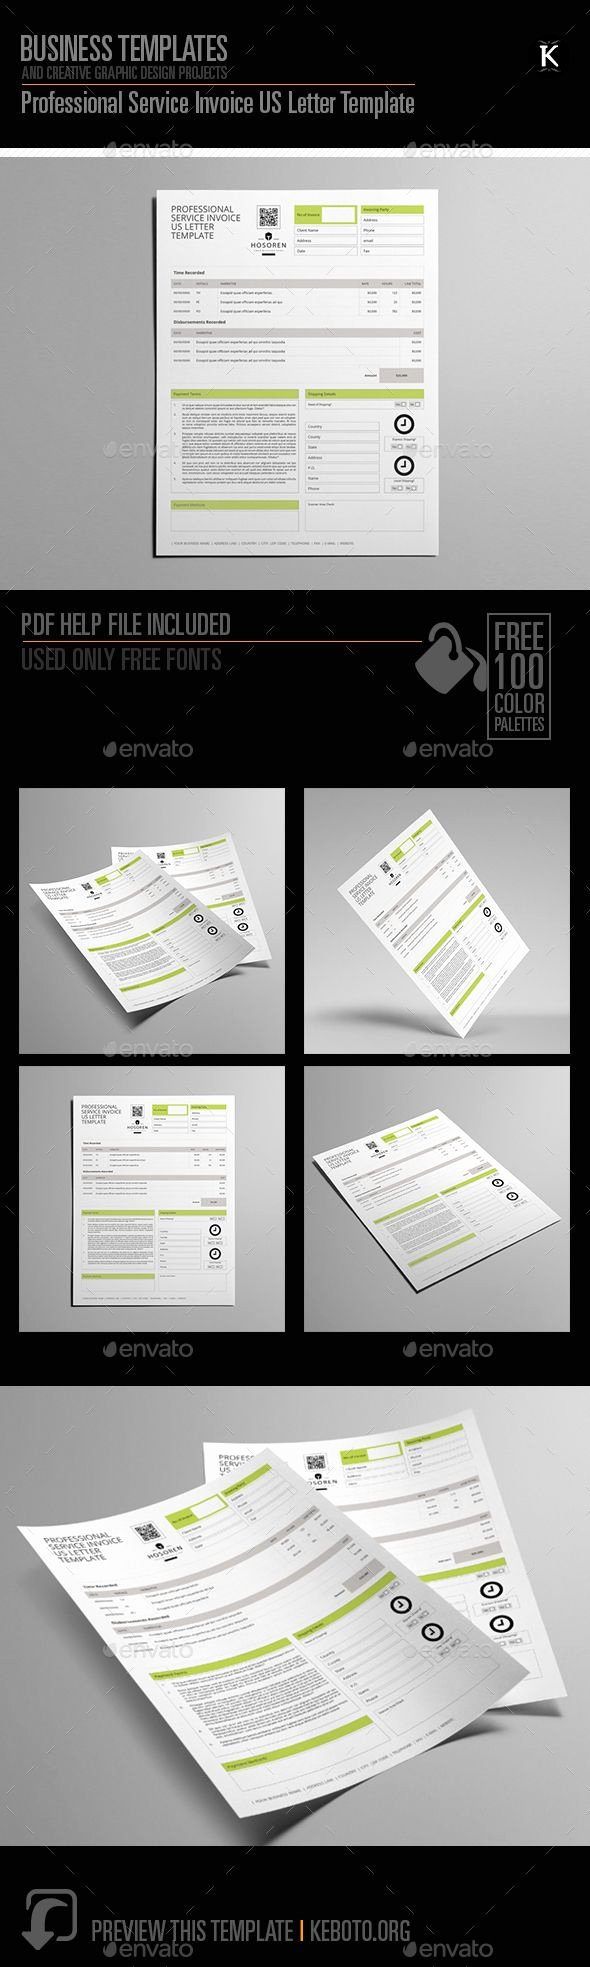 Graphic Design Invoice Template Indesign Luxury Pin by Cool Design On Proposal & Invoice Design